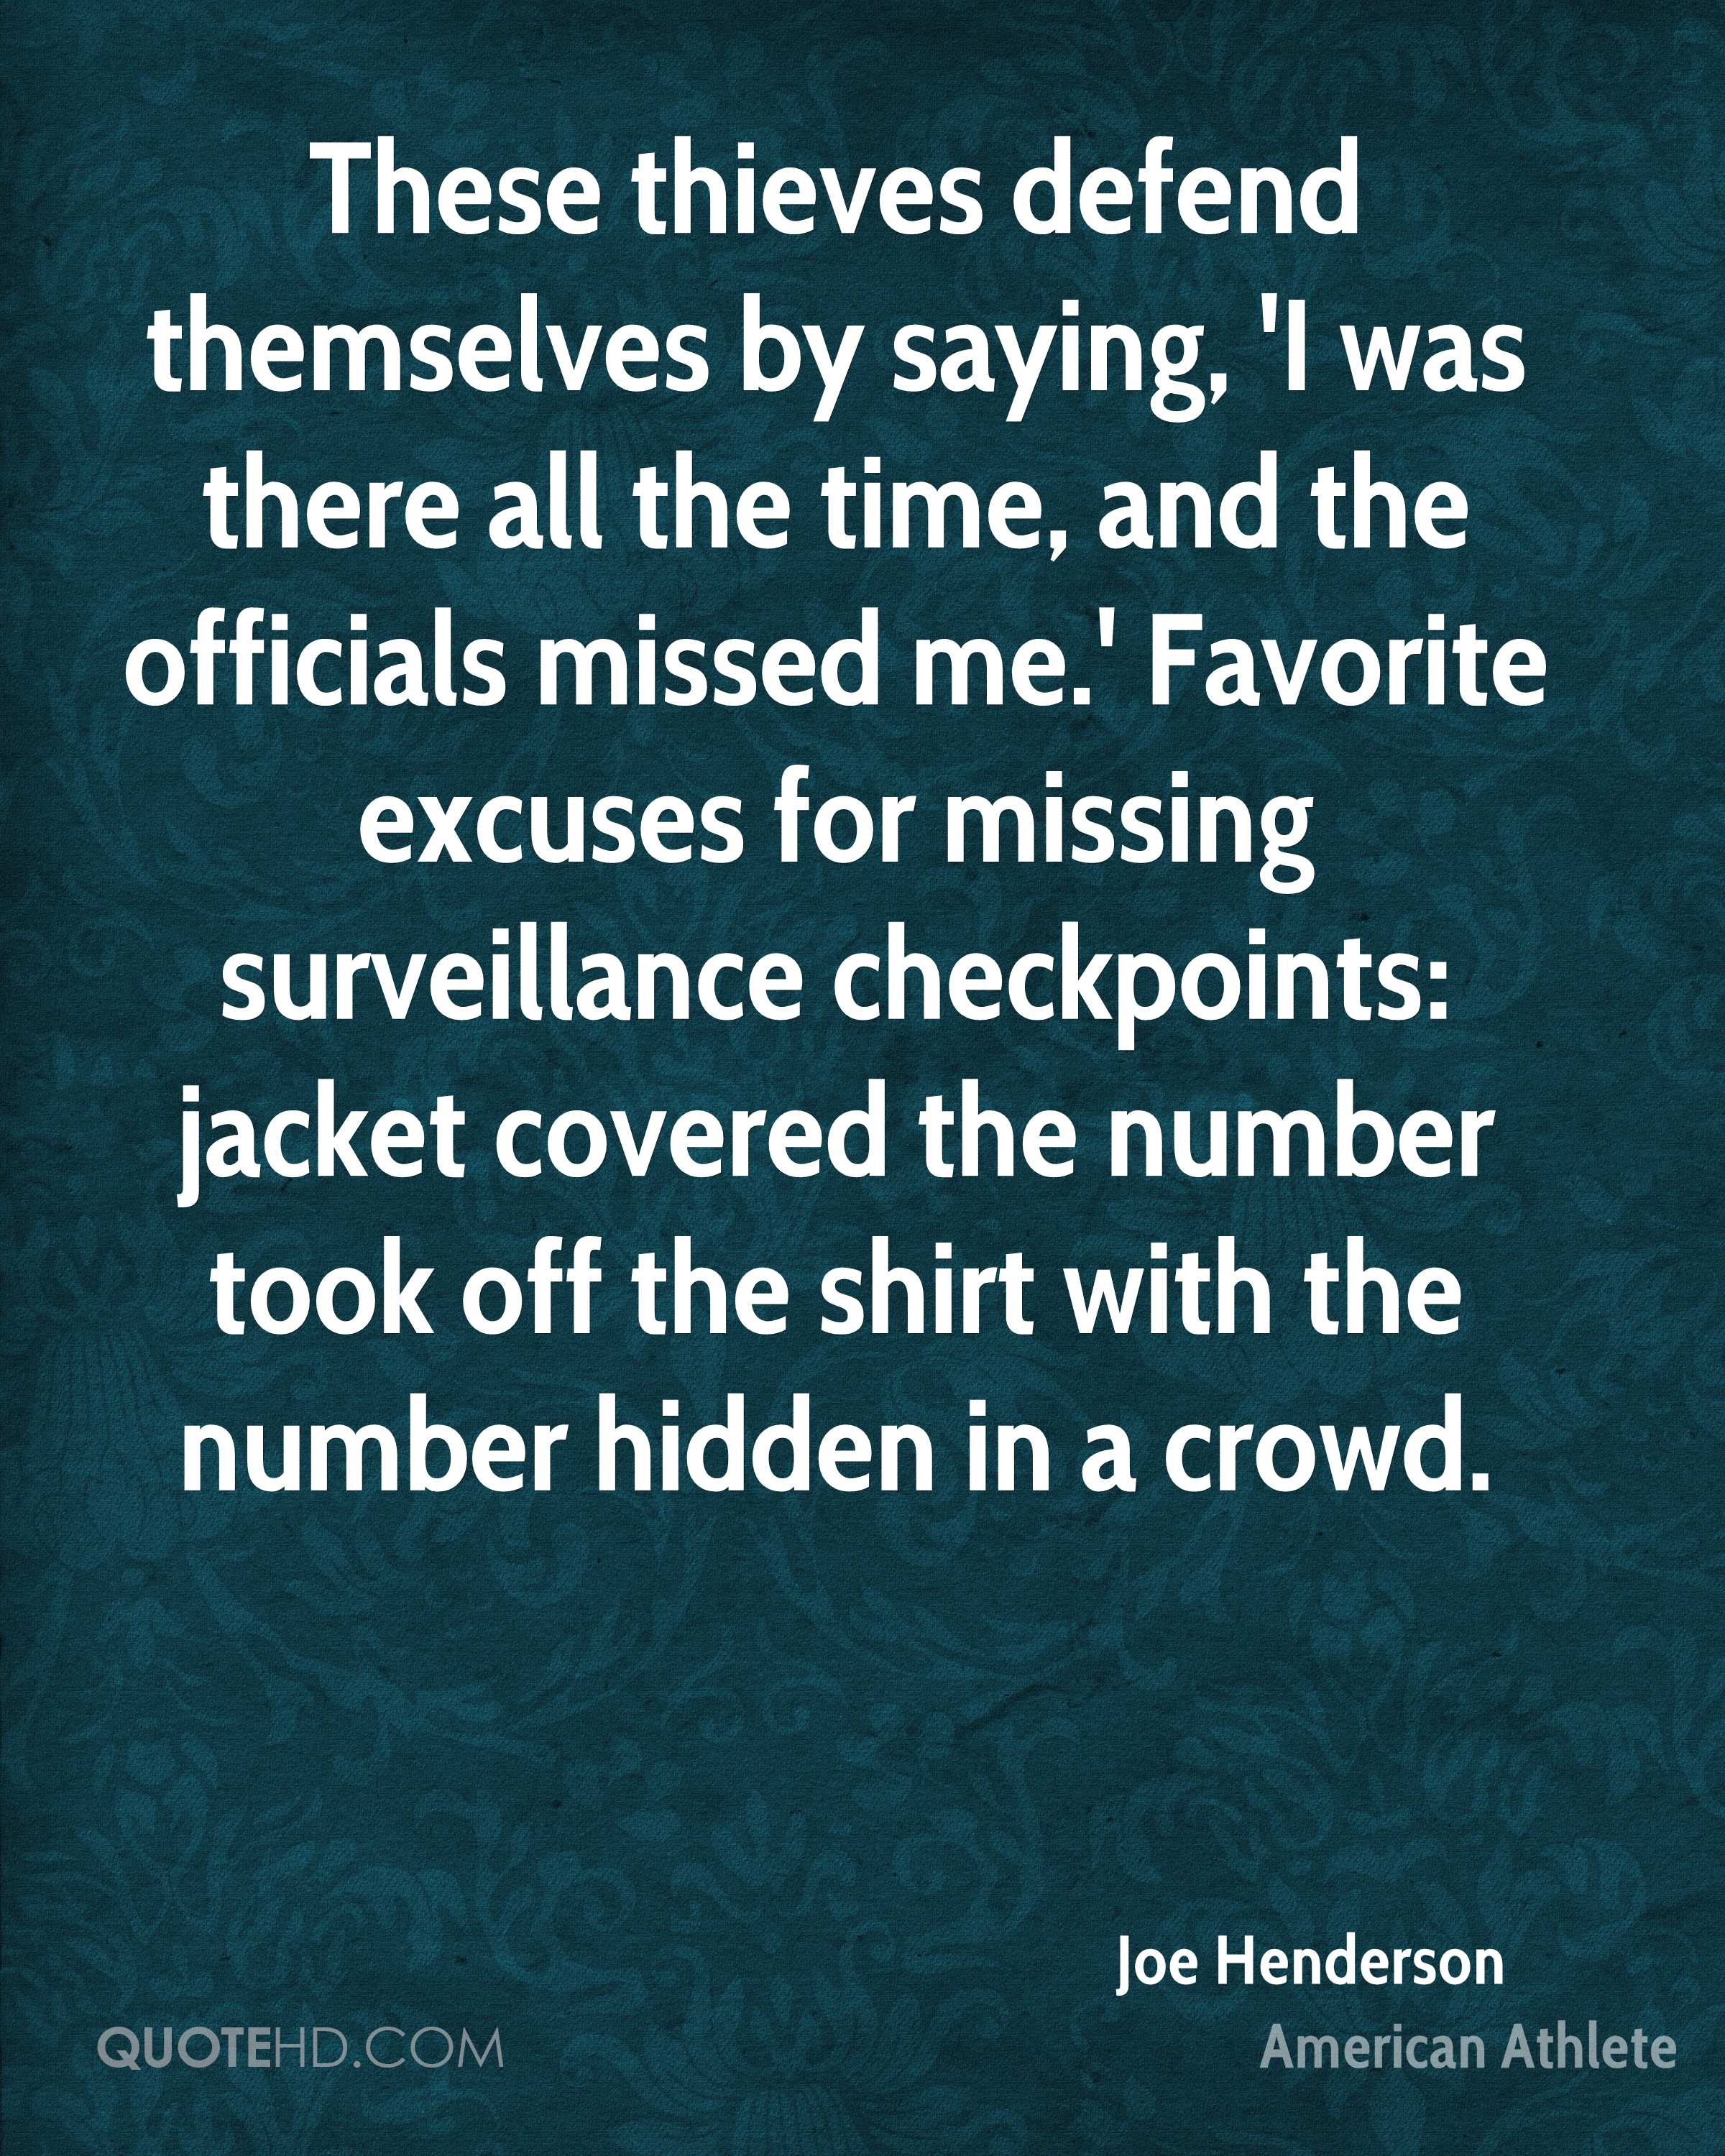 These thieves defend themselves by saying, 'I was there all the time, and the officials missed me.' Favorite excuses for missing surveillance checkpoints: jacket covered the number took off the shirt with the number hidden in a crowd.